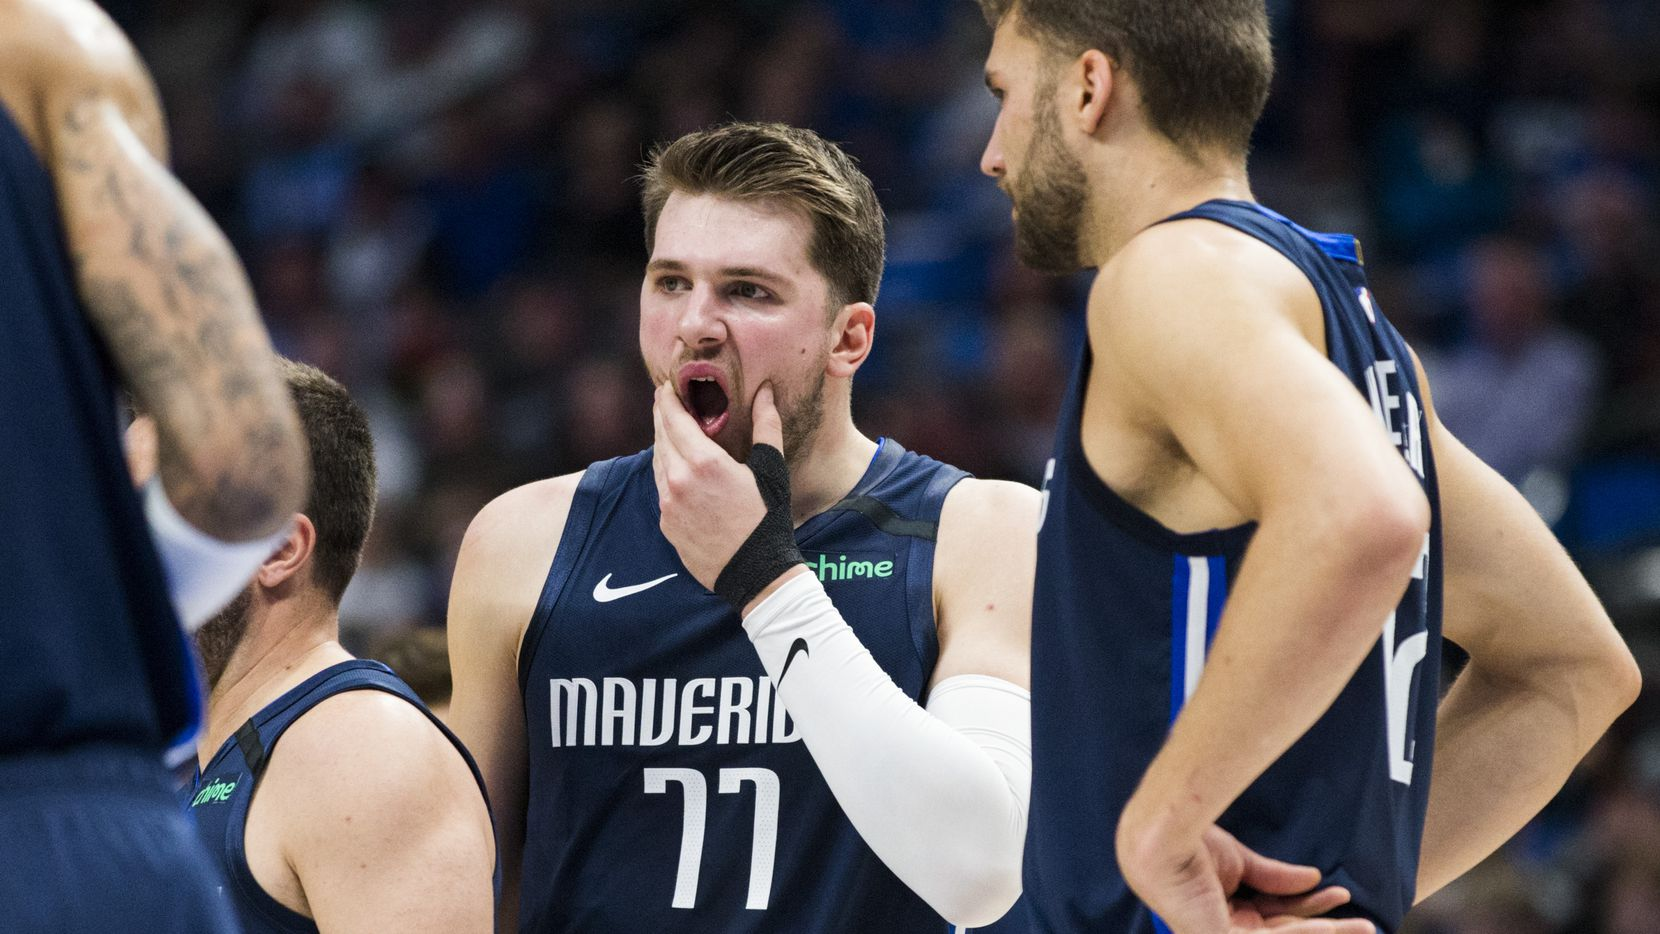 FILE - Mavericks guard Luka Doncic (77) reacts after being hit in the face by the knee of Pacers guard Edmond Sumner (5) during the second quarter of a game on Sunday, March 8, 2020, at American Airlines Center in Dallas.